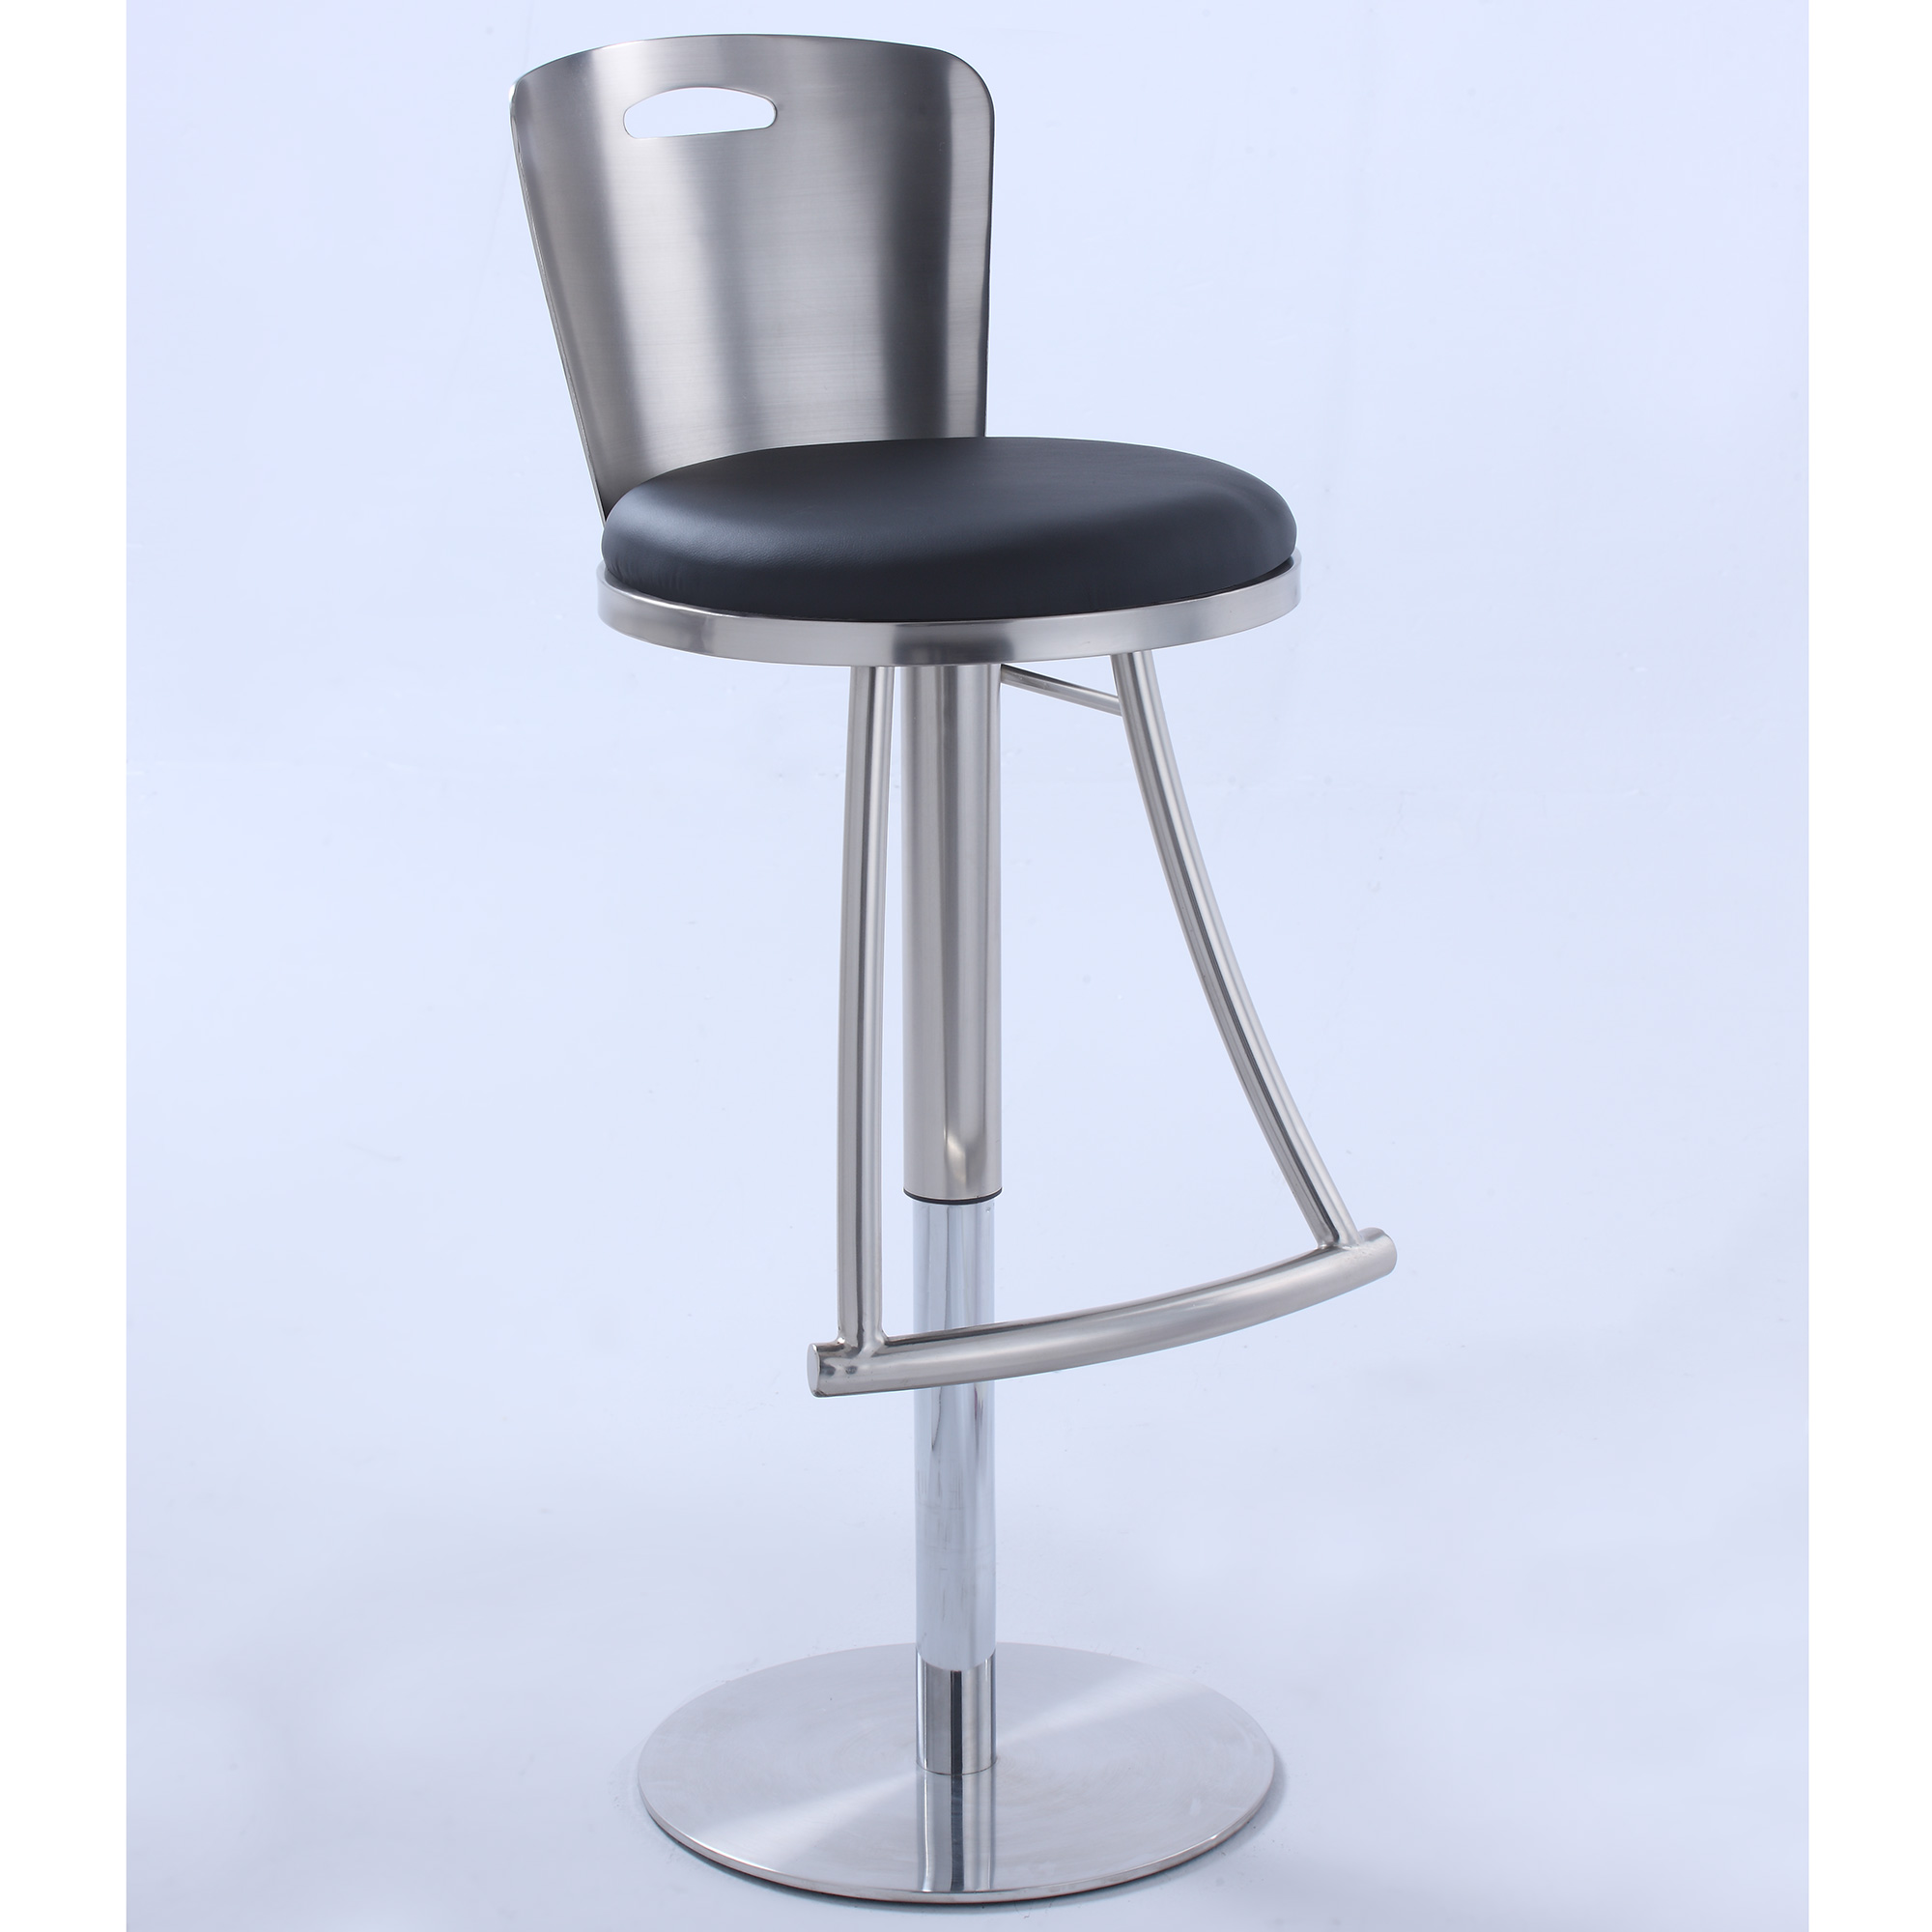 Surprising Metal Back Adjustable Height Bar Stool In Brushed Nickel Black Leatherette By Chintaly Imports Squirreltailoven Fun Painted Chair Ideas Images Squirreltailovenorg